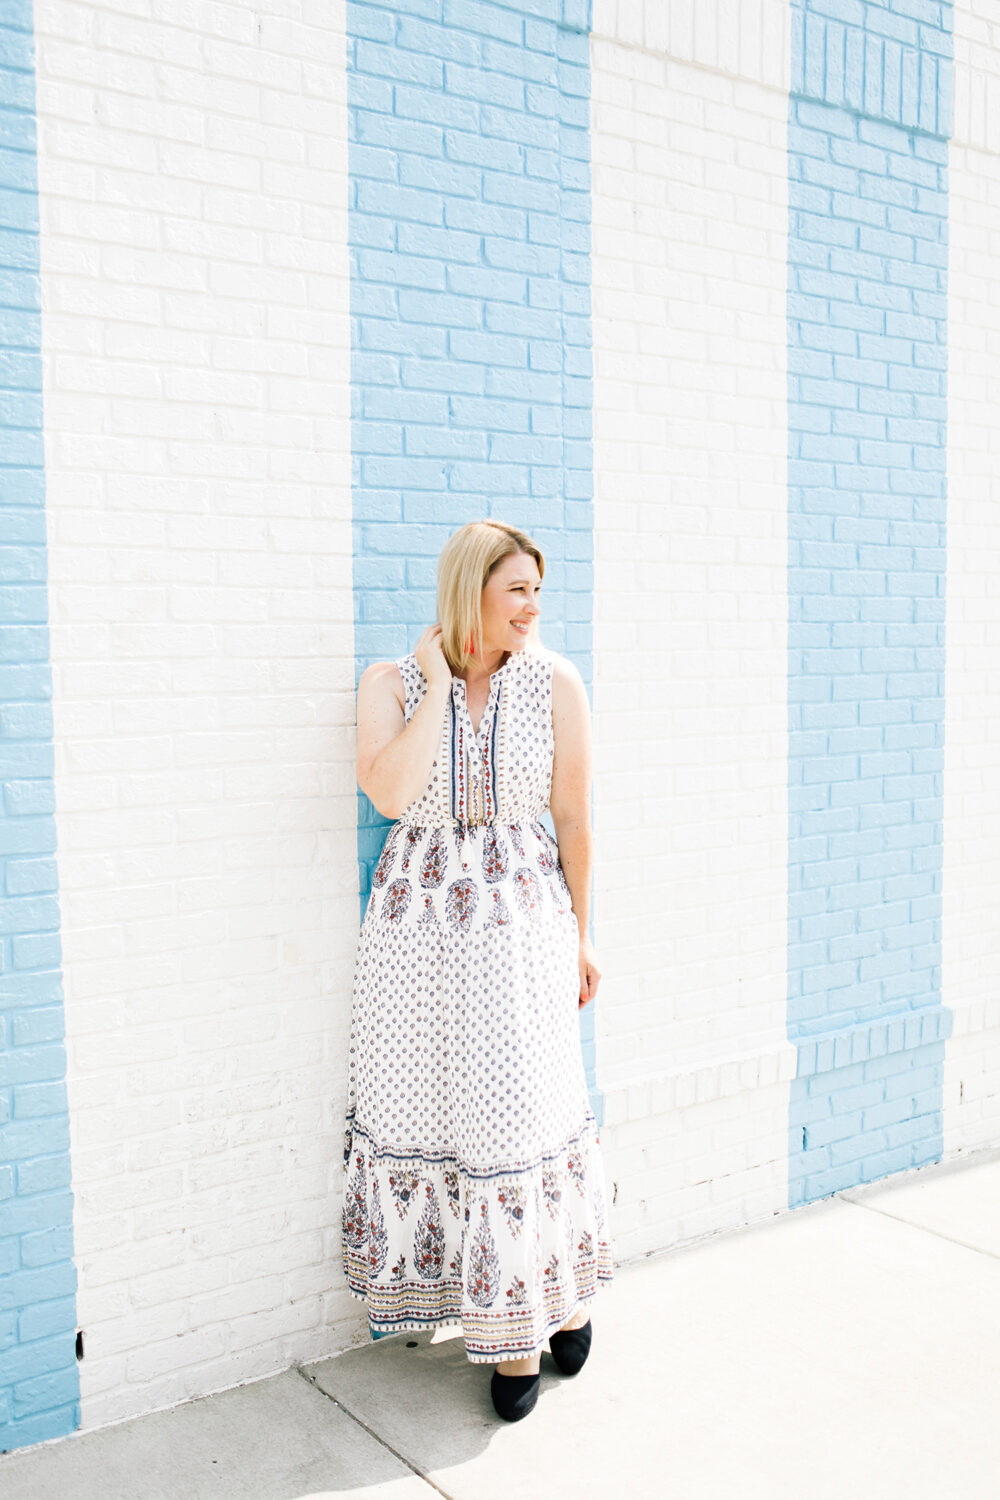 Casual Fall Outfit: I love this maxi dress for easy layering!